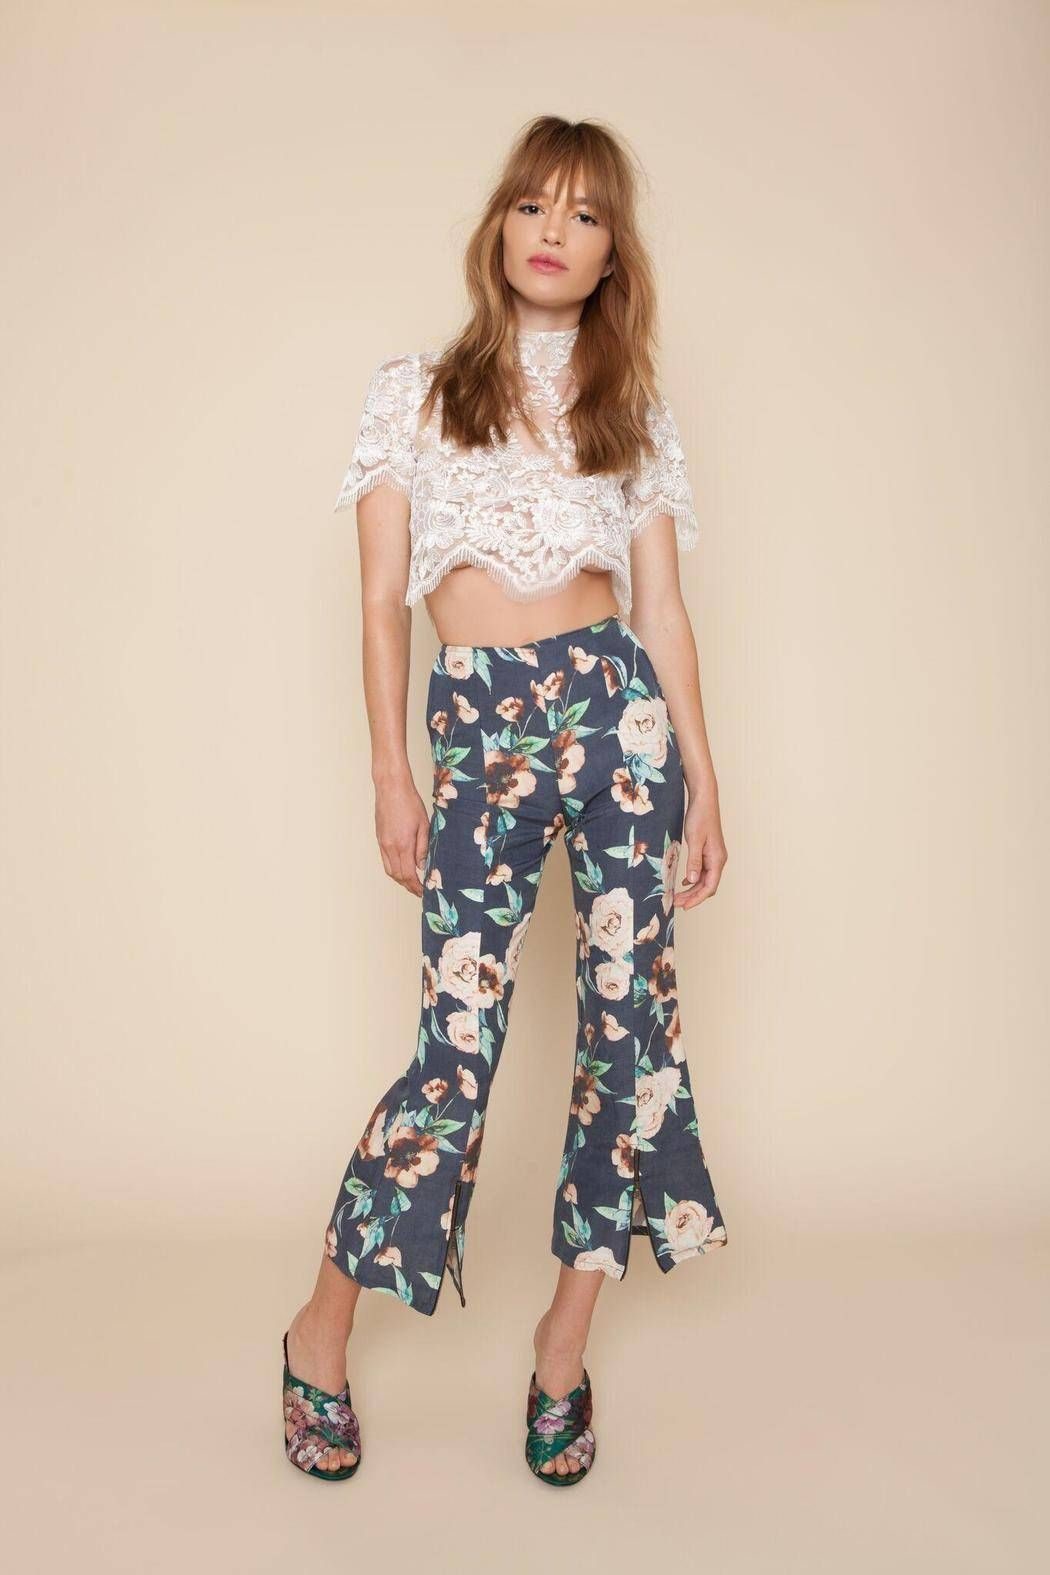 Navy Cosmo print stretch silk/linen blend Print designed in-house by STONE COLD FOX Cropped bell bottom pants Back zipper entrance Decorative zippers at bottom High Waisted Made in Los Angeles DRY CLEAN ONLY.   Floral Bell Pant  by Stone Cold Fox. Clothing - Bottoms - Pants & Leggings - Flare & Wide Leg Clothing - Bottoms California